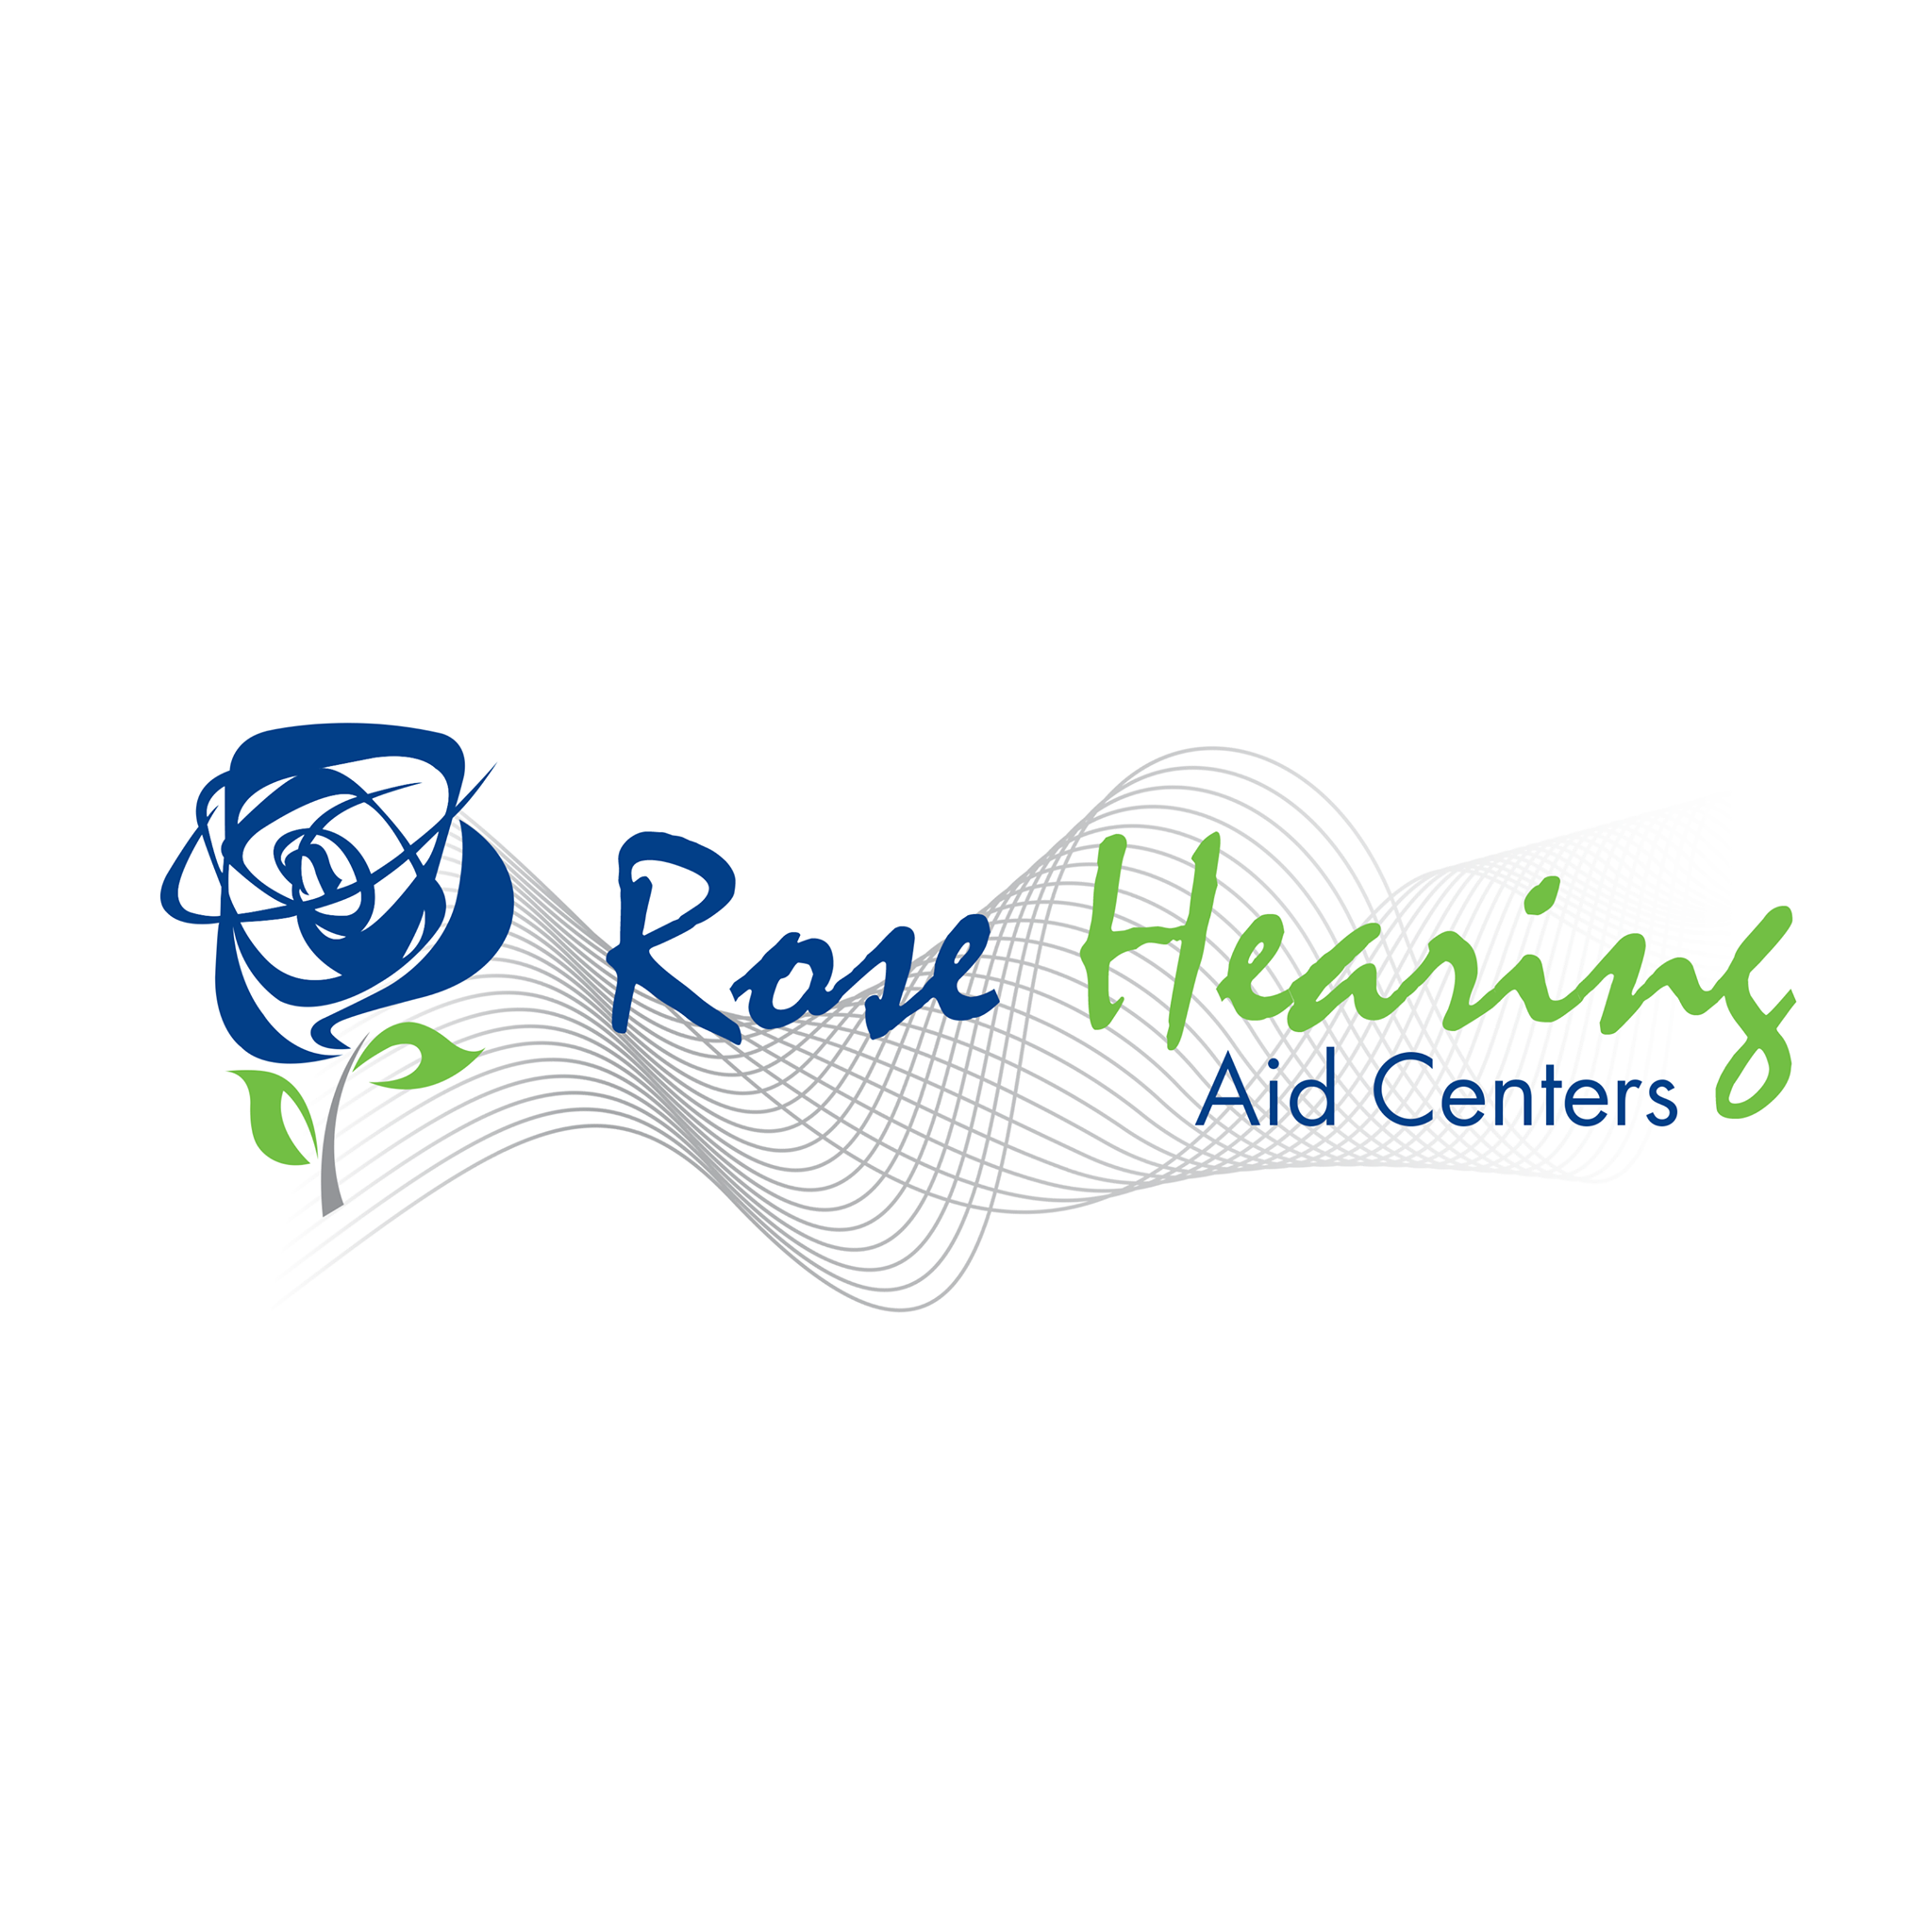 Rose Hearing Aid Centers